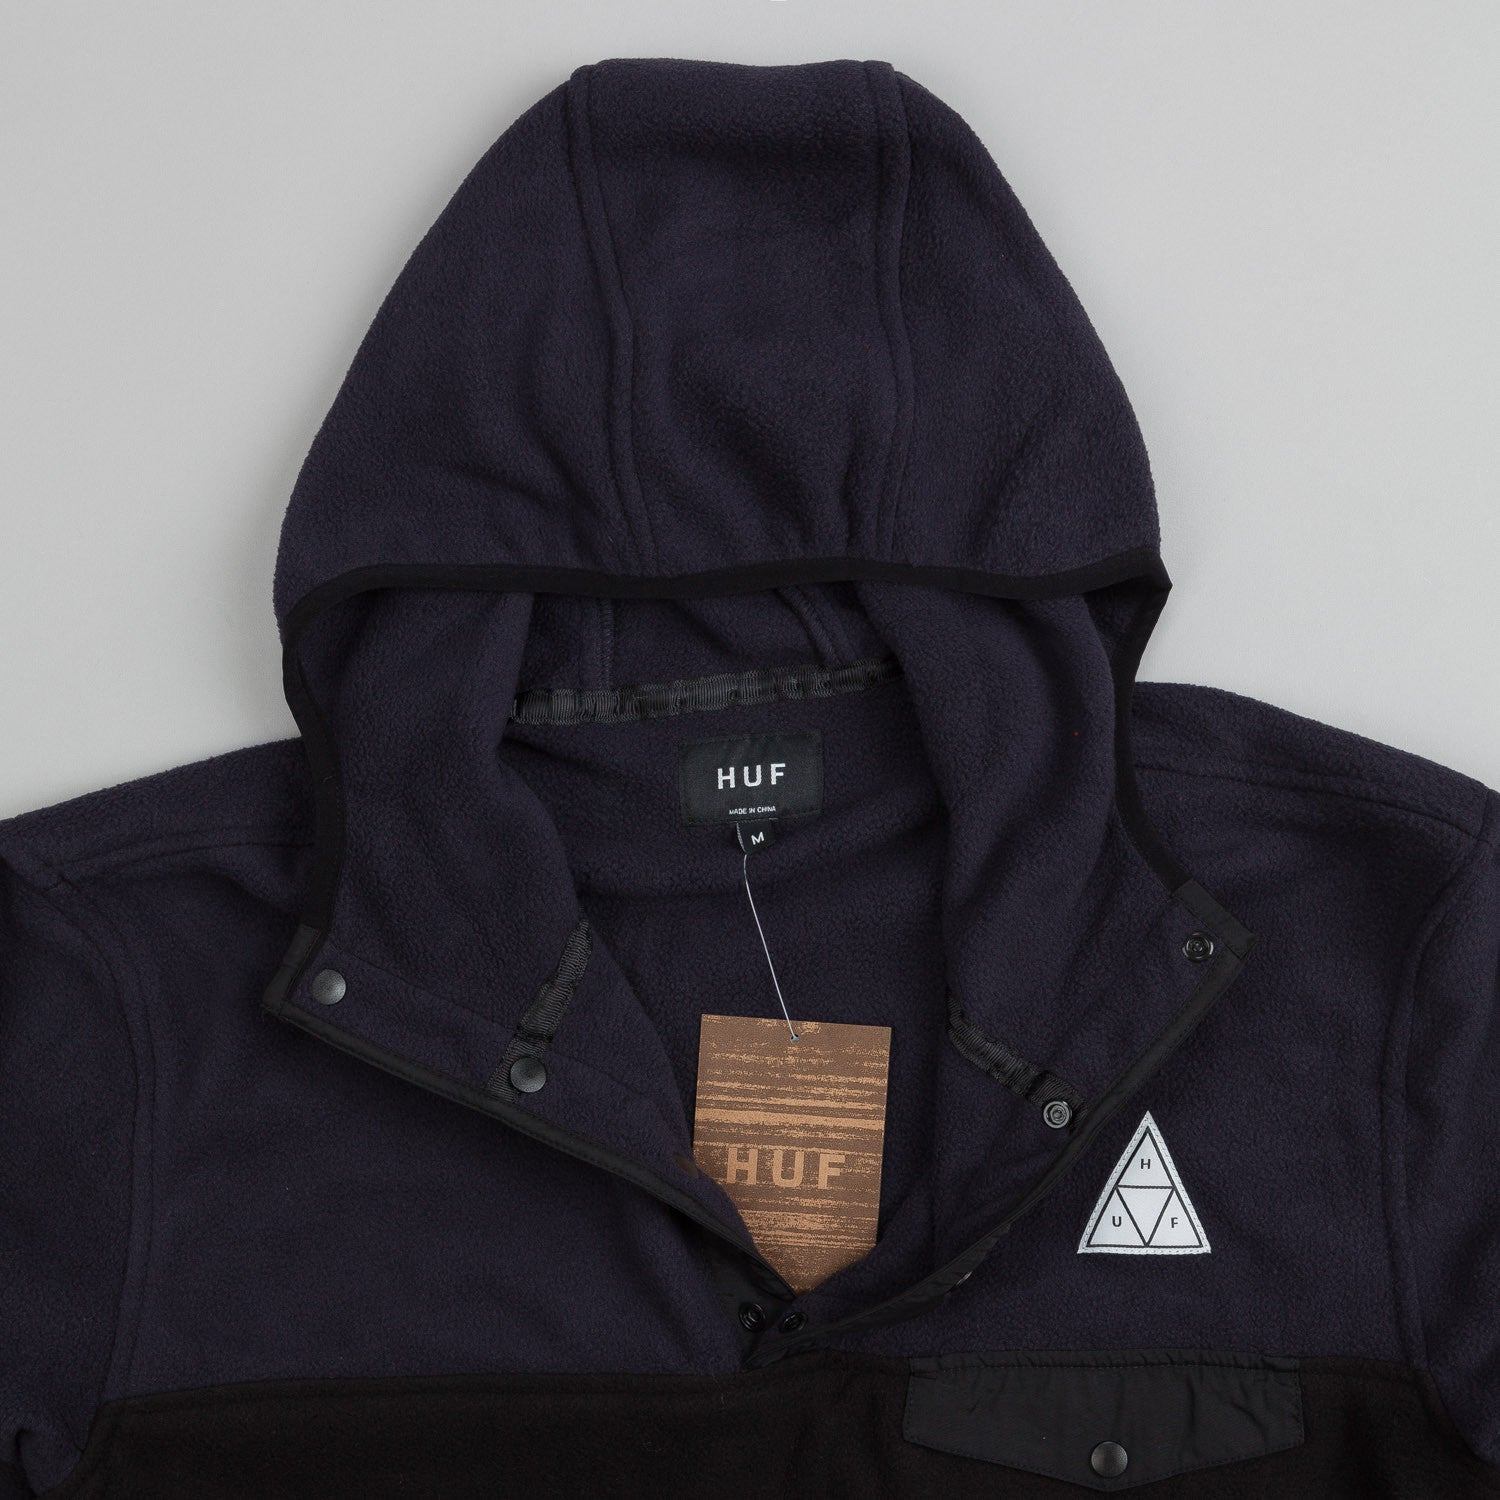 HUF Polar Fleece Pullover Snap Hooded Sweatshirt Black / Charcoal